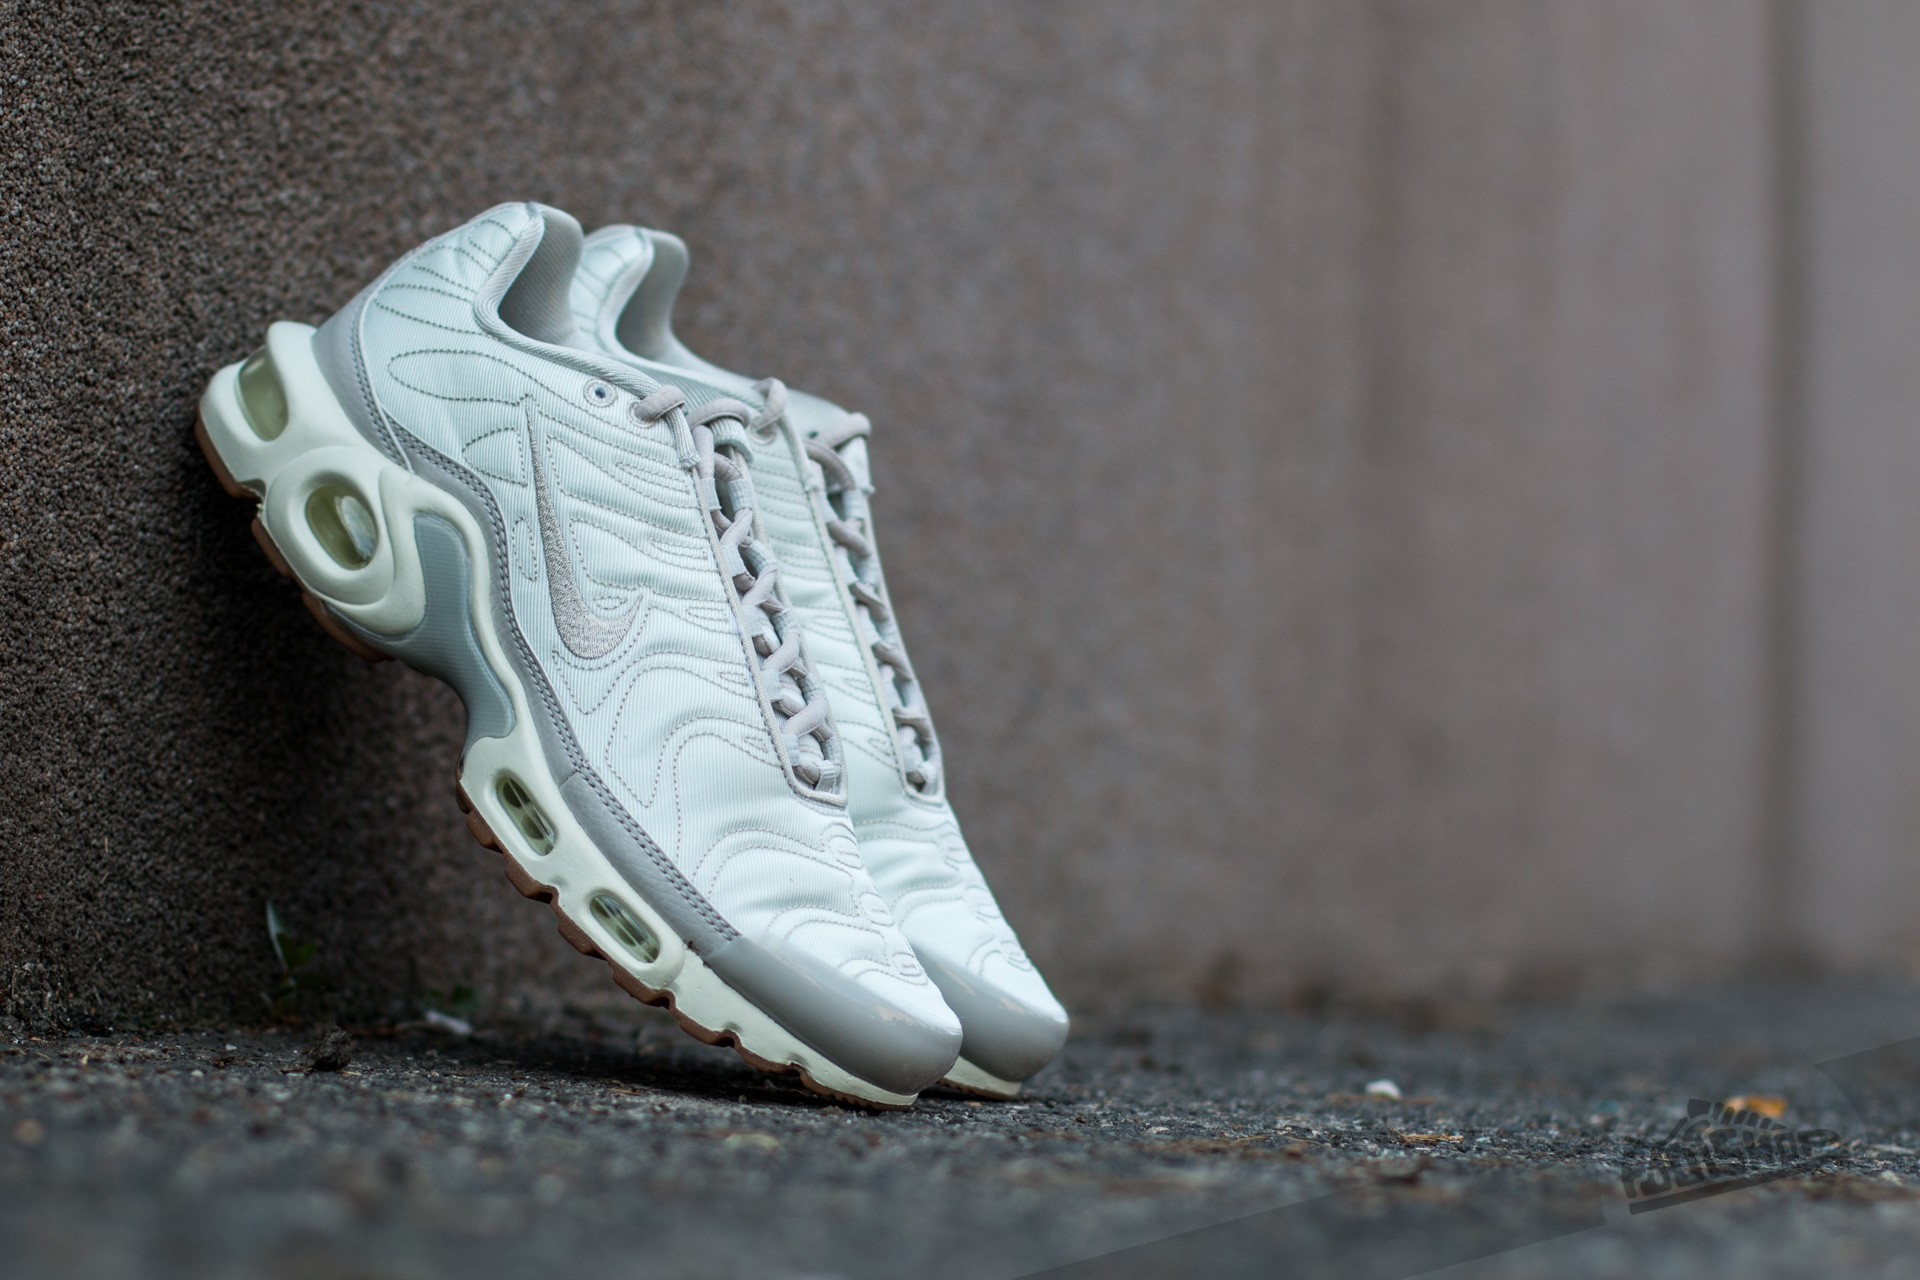 newest collection 69945 7b4ae Nike Wmns Air Max Plus Premium Light Bone/ Light Bone-Sail ...